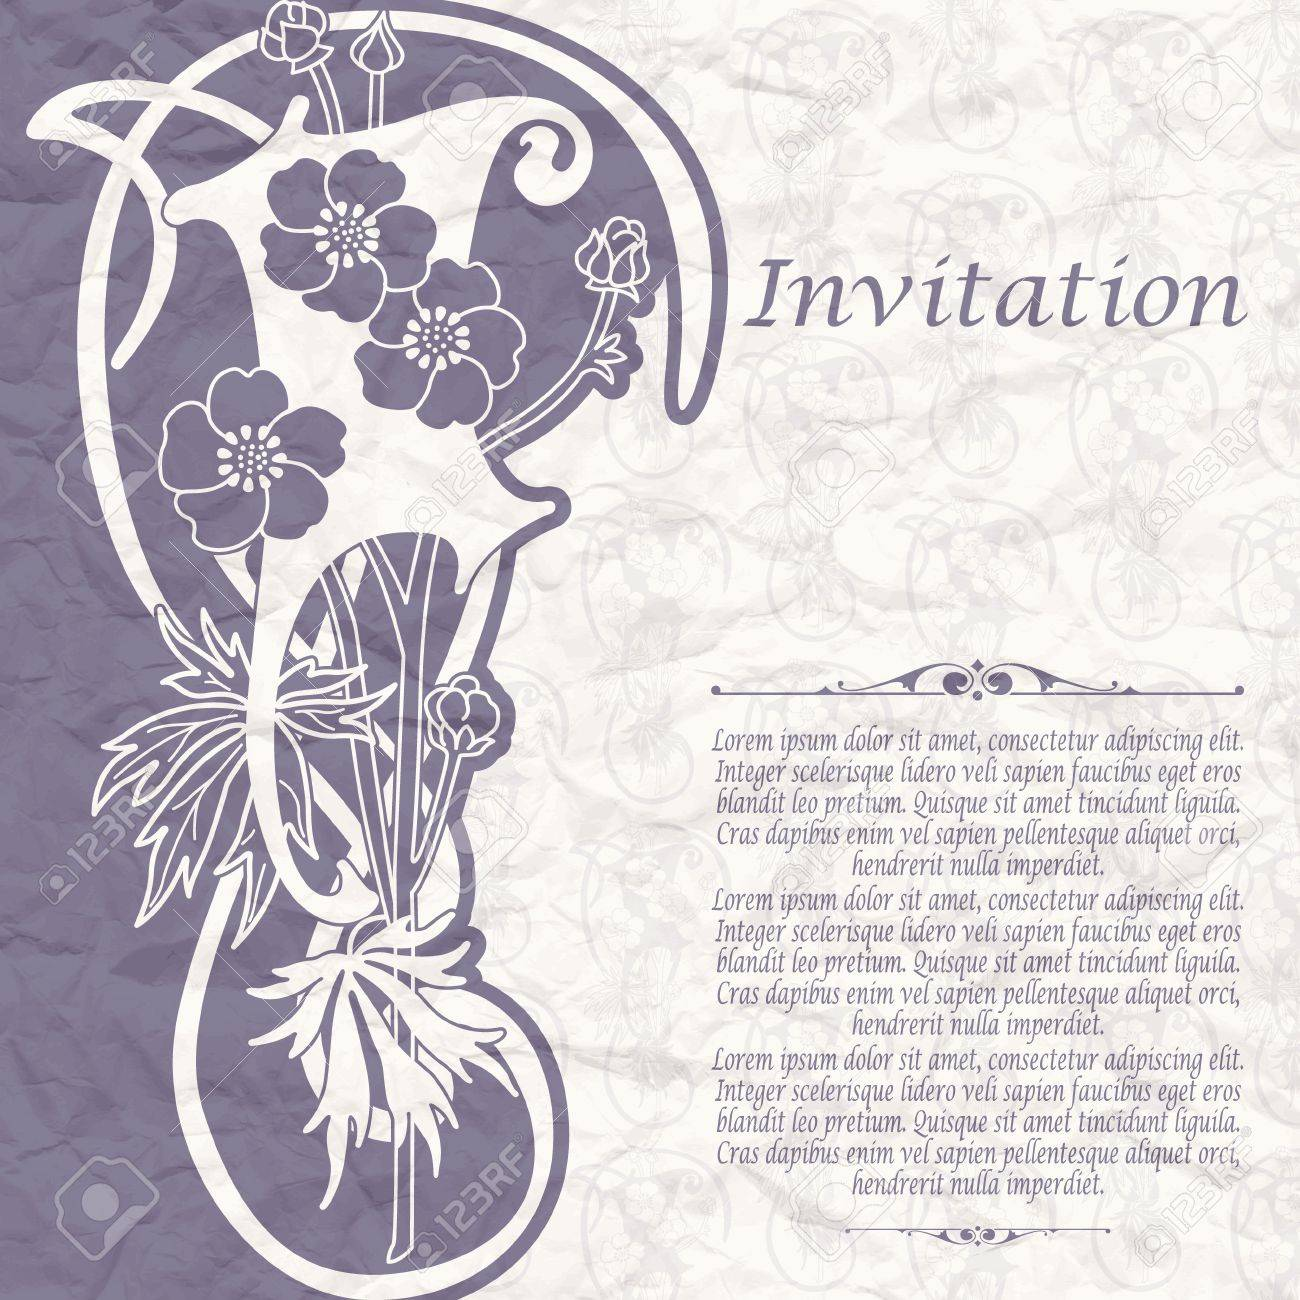 Vintage background for the invitation with flowers Stock Vector - 18435225